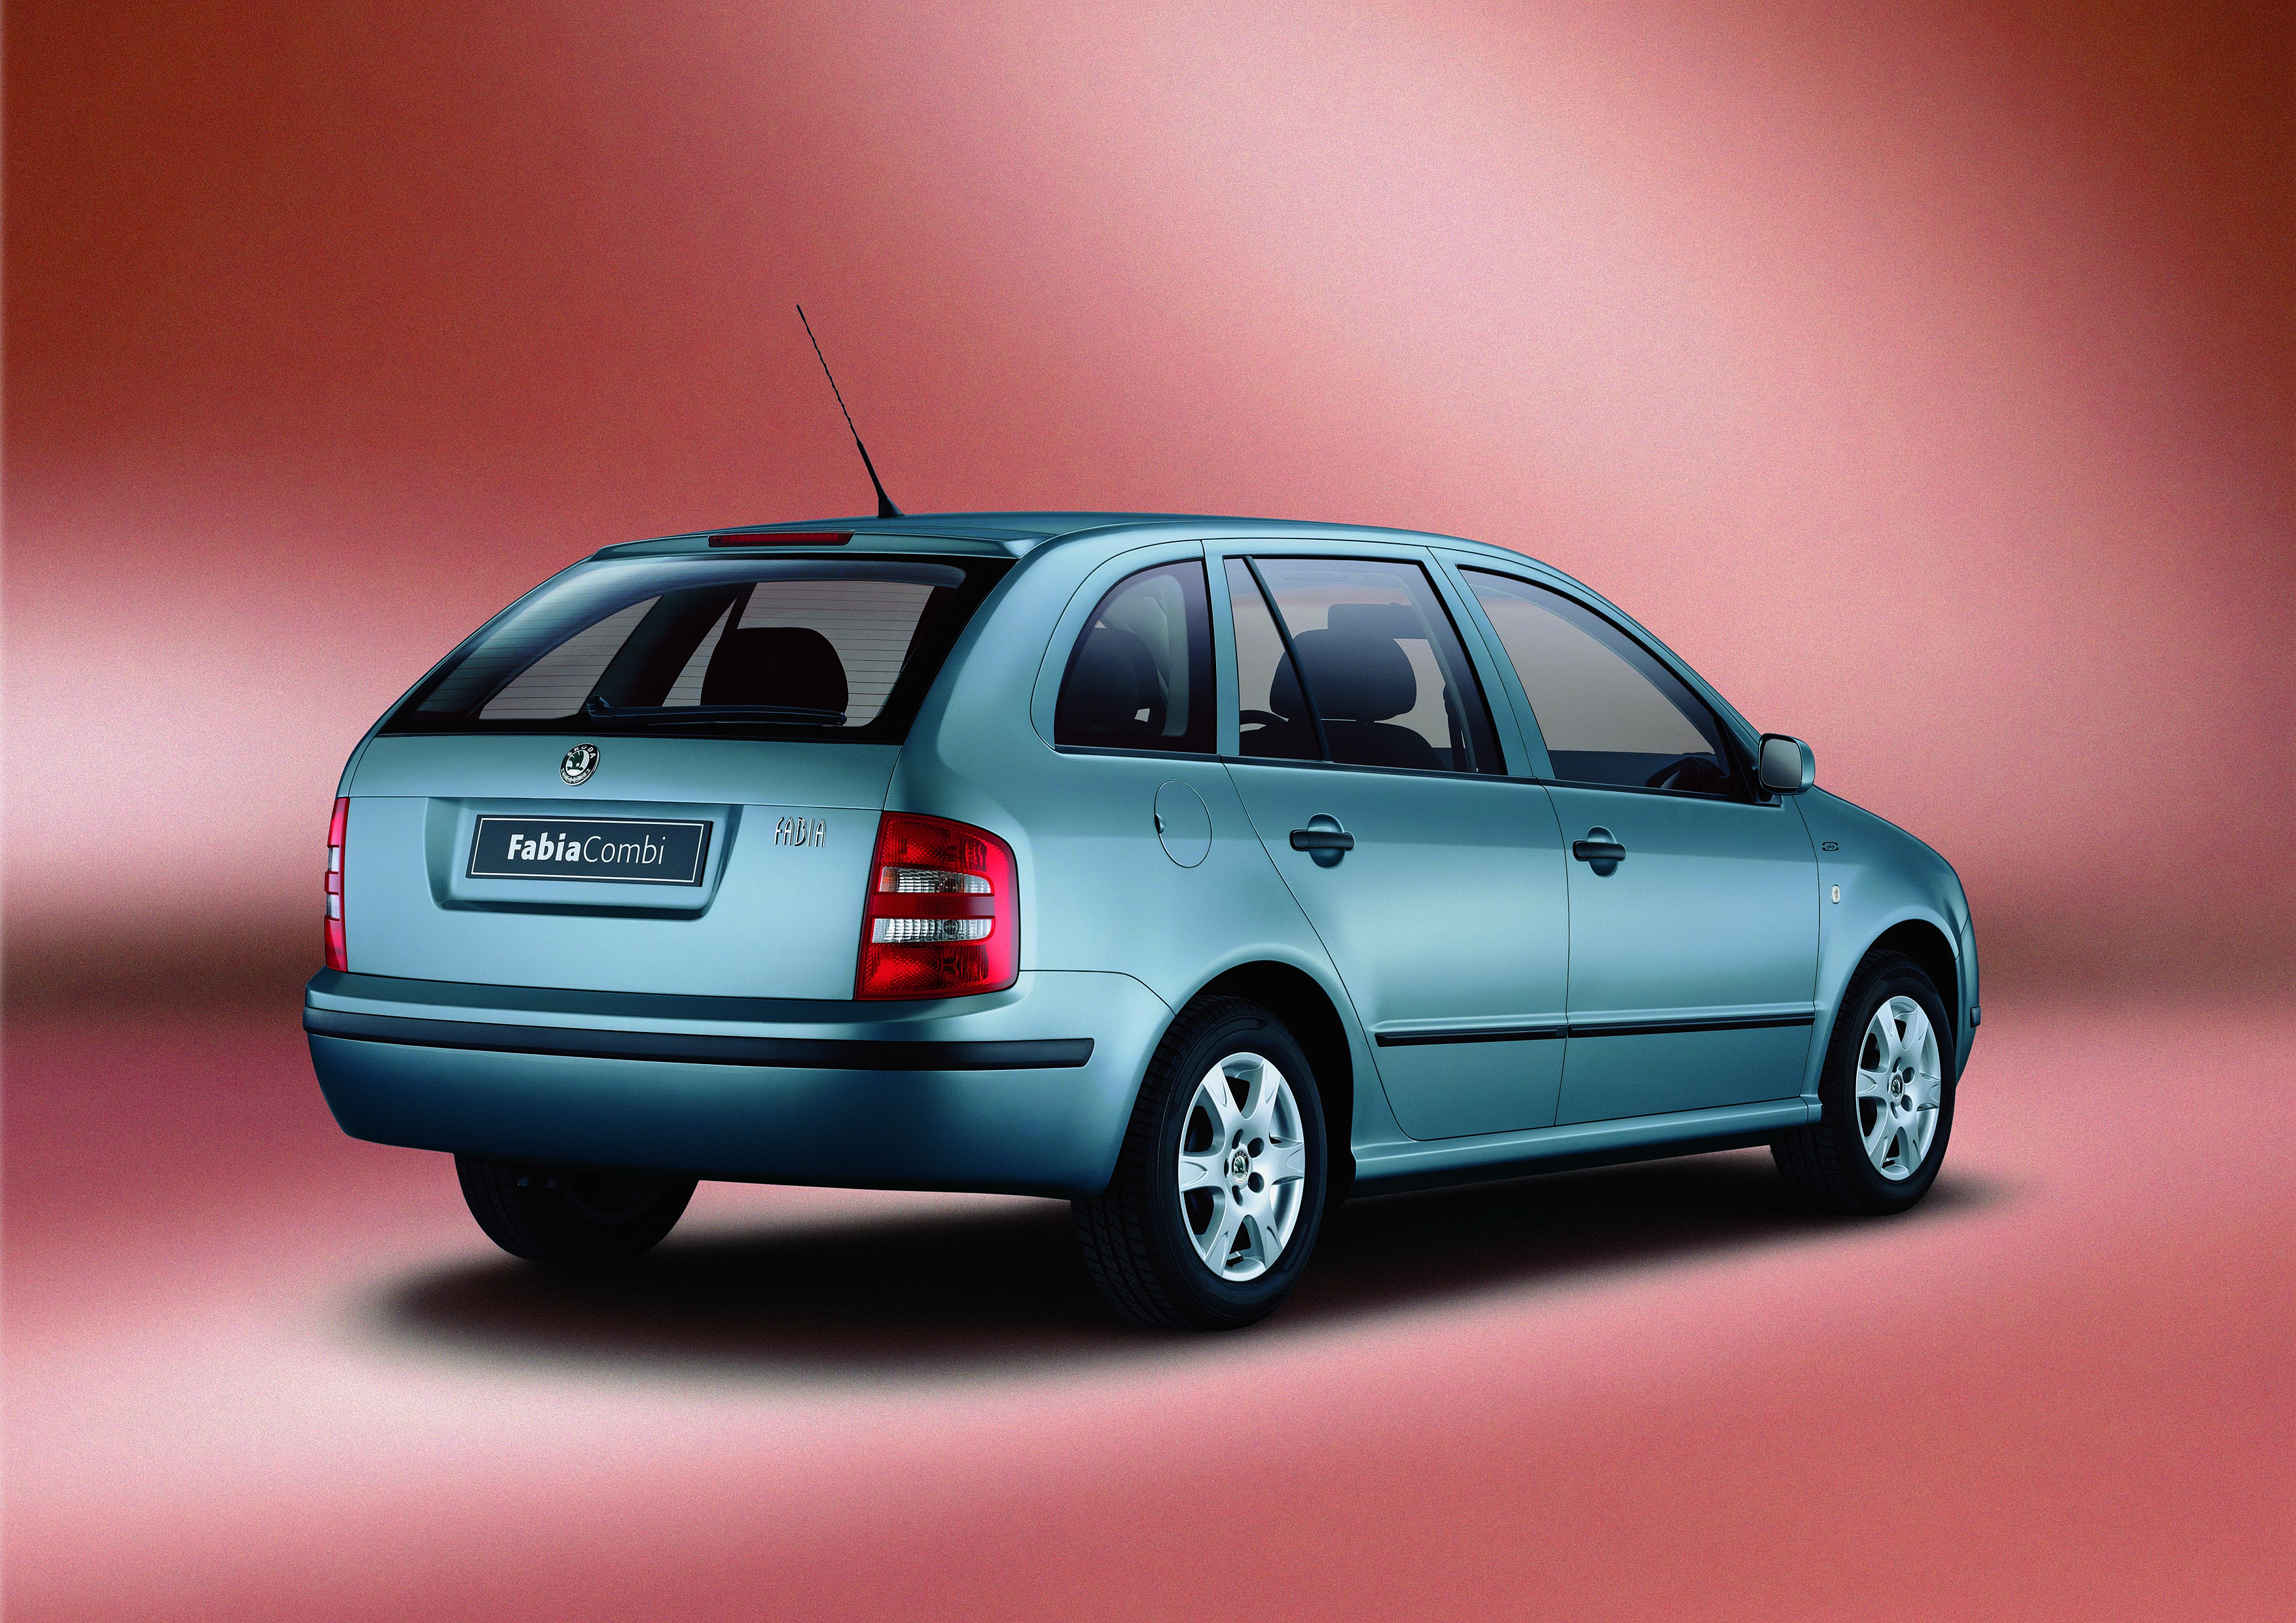 20 years of the SKODA FABIA COMBI: A real success story - Image 3